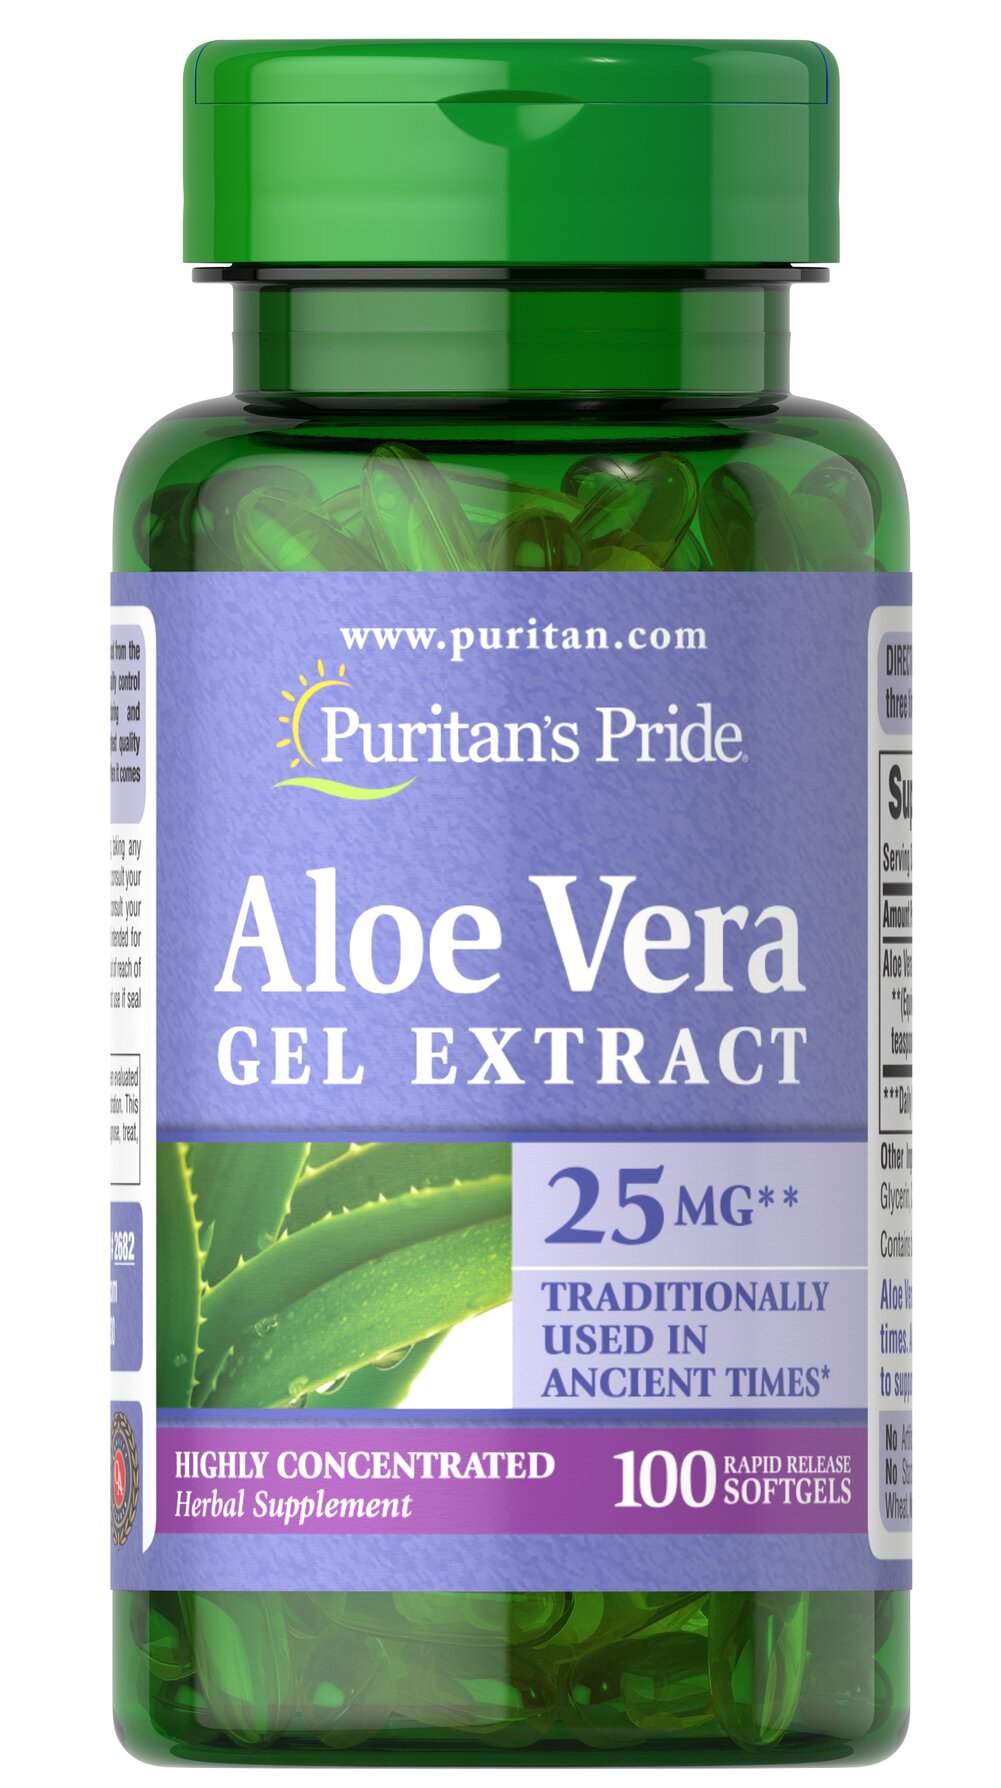 Aloe Vera Extract 25 mg <p>Serves as an aid for healthy digestion**</p><p>Plays a role in the well-being of the body**</p><p>Convenience of capsules, softgels and liquids is unsurpassed</p><p>Has been used and trusted for centuries. **</p><p>Aloe Vera contains a vast array of vitamins, minerals, amino acids, polysaccharides and phenolic compounds, and has been shown to support a healthy digestive system.**</p> 100 Softgels 25 mg $10.49